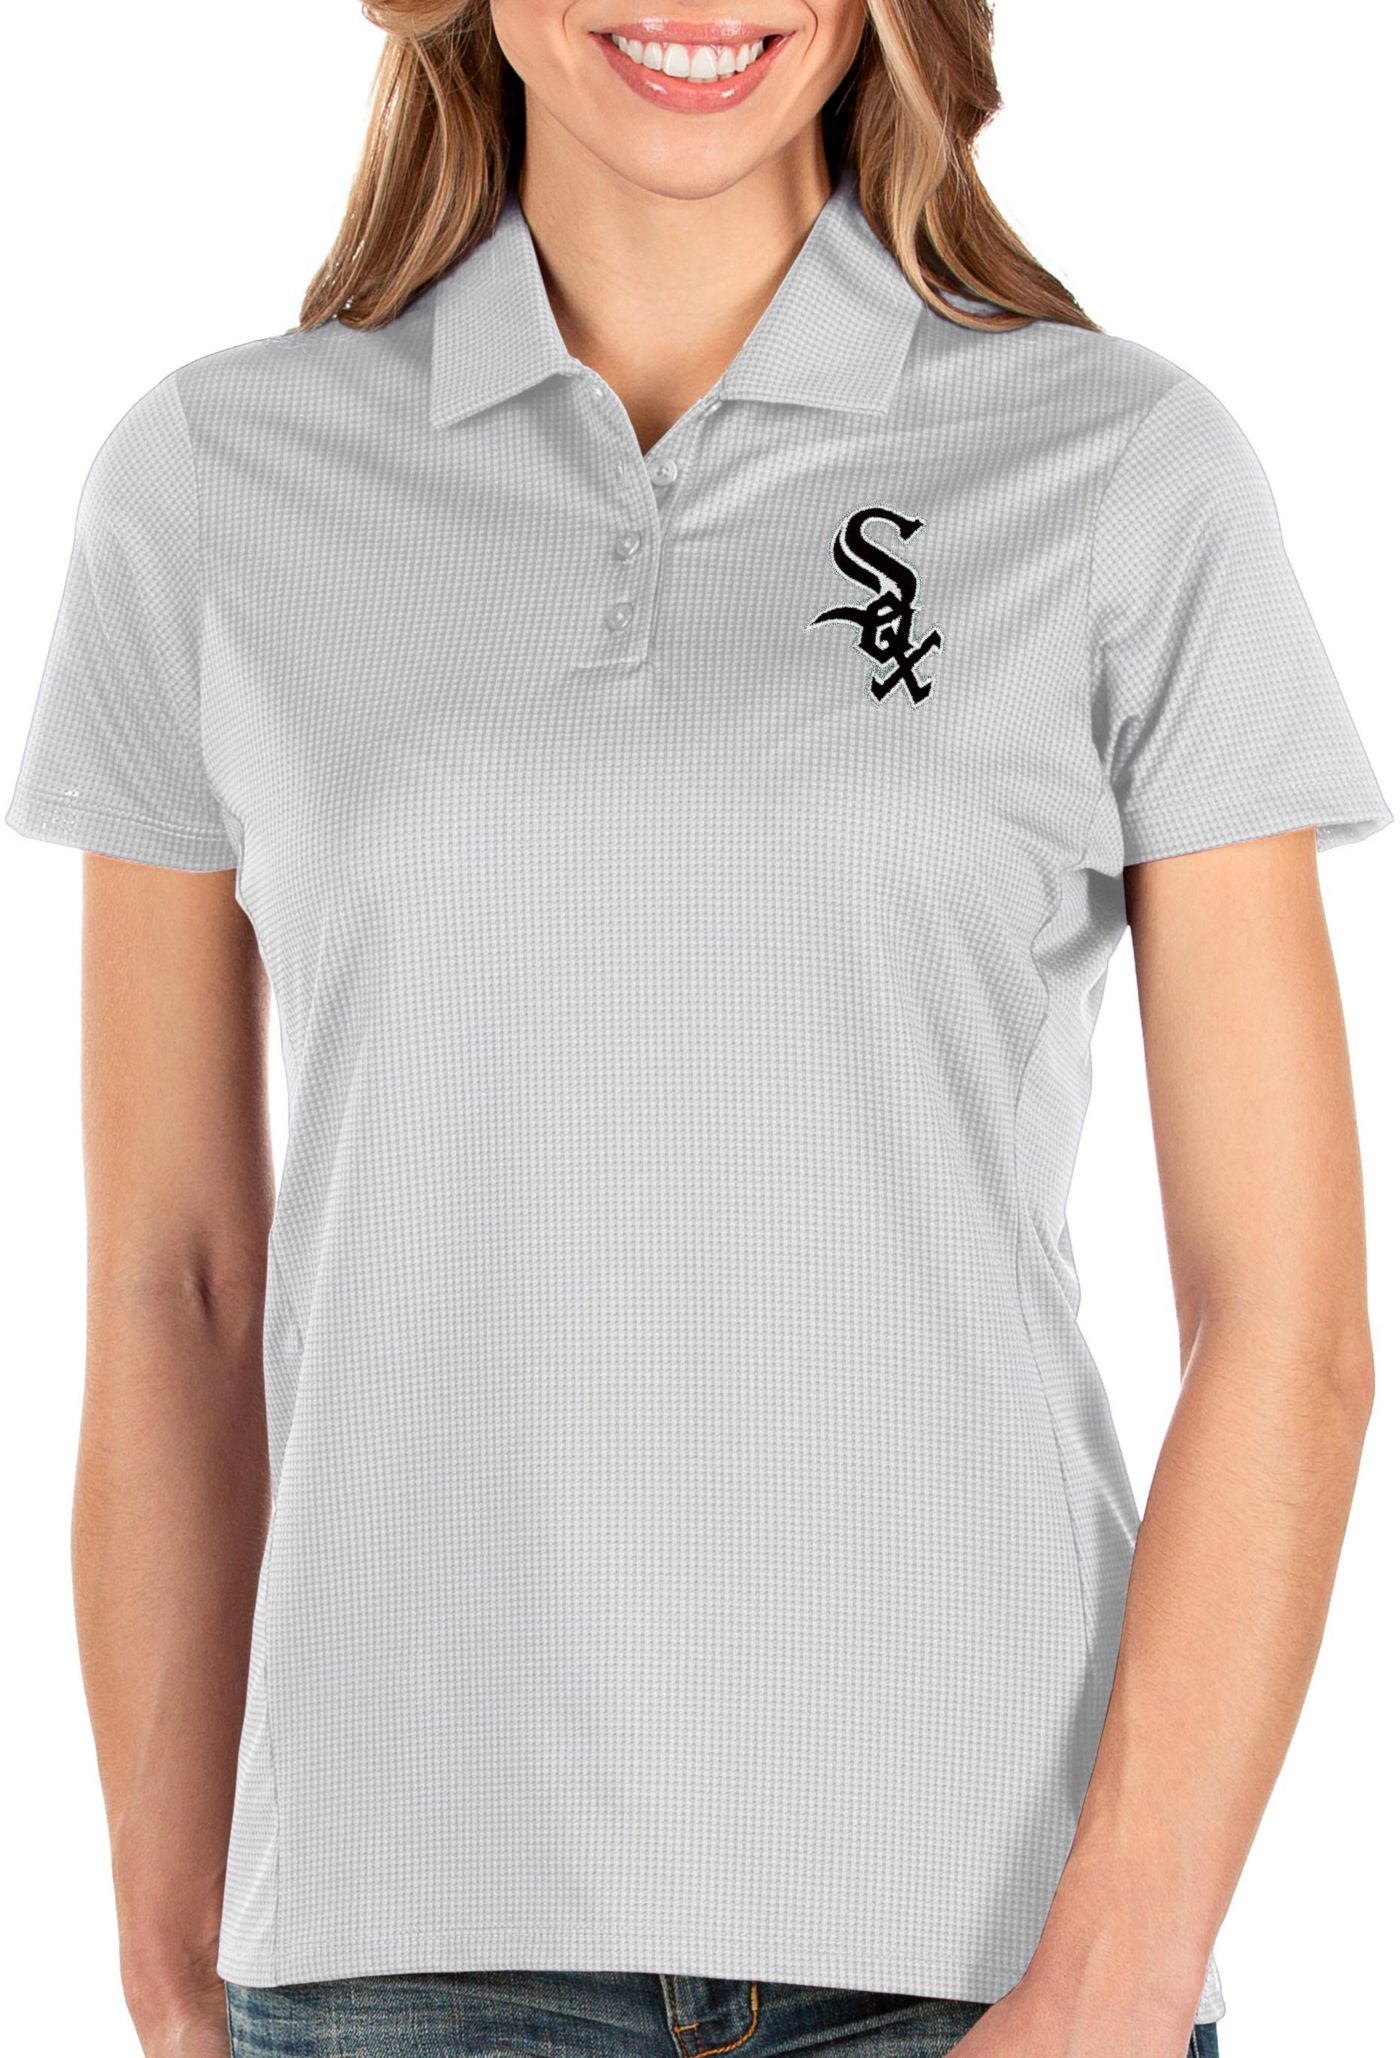 Antigua Women's Chicago White Sox White Balance Polo